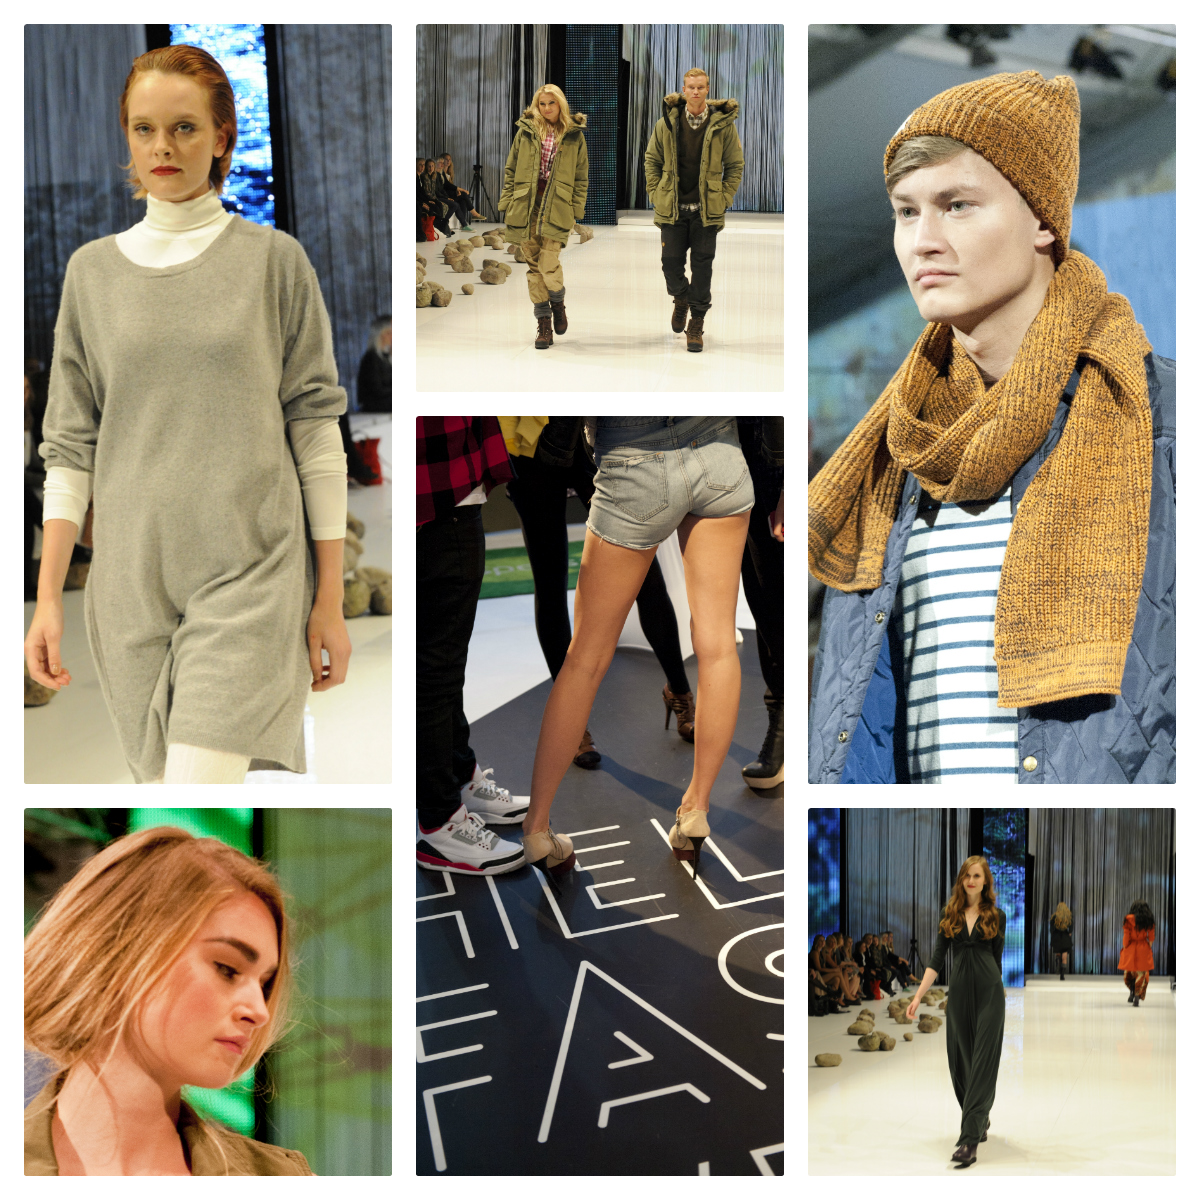 Helsinki Fashion Weekend